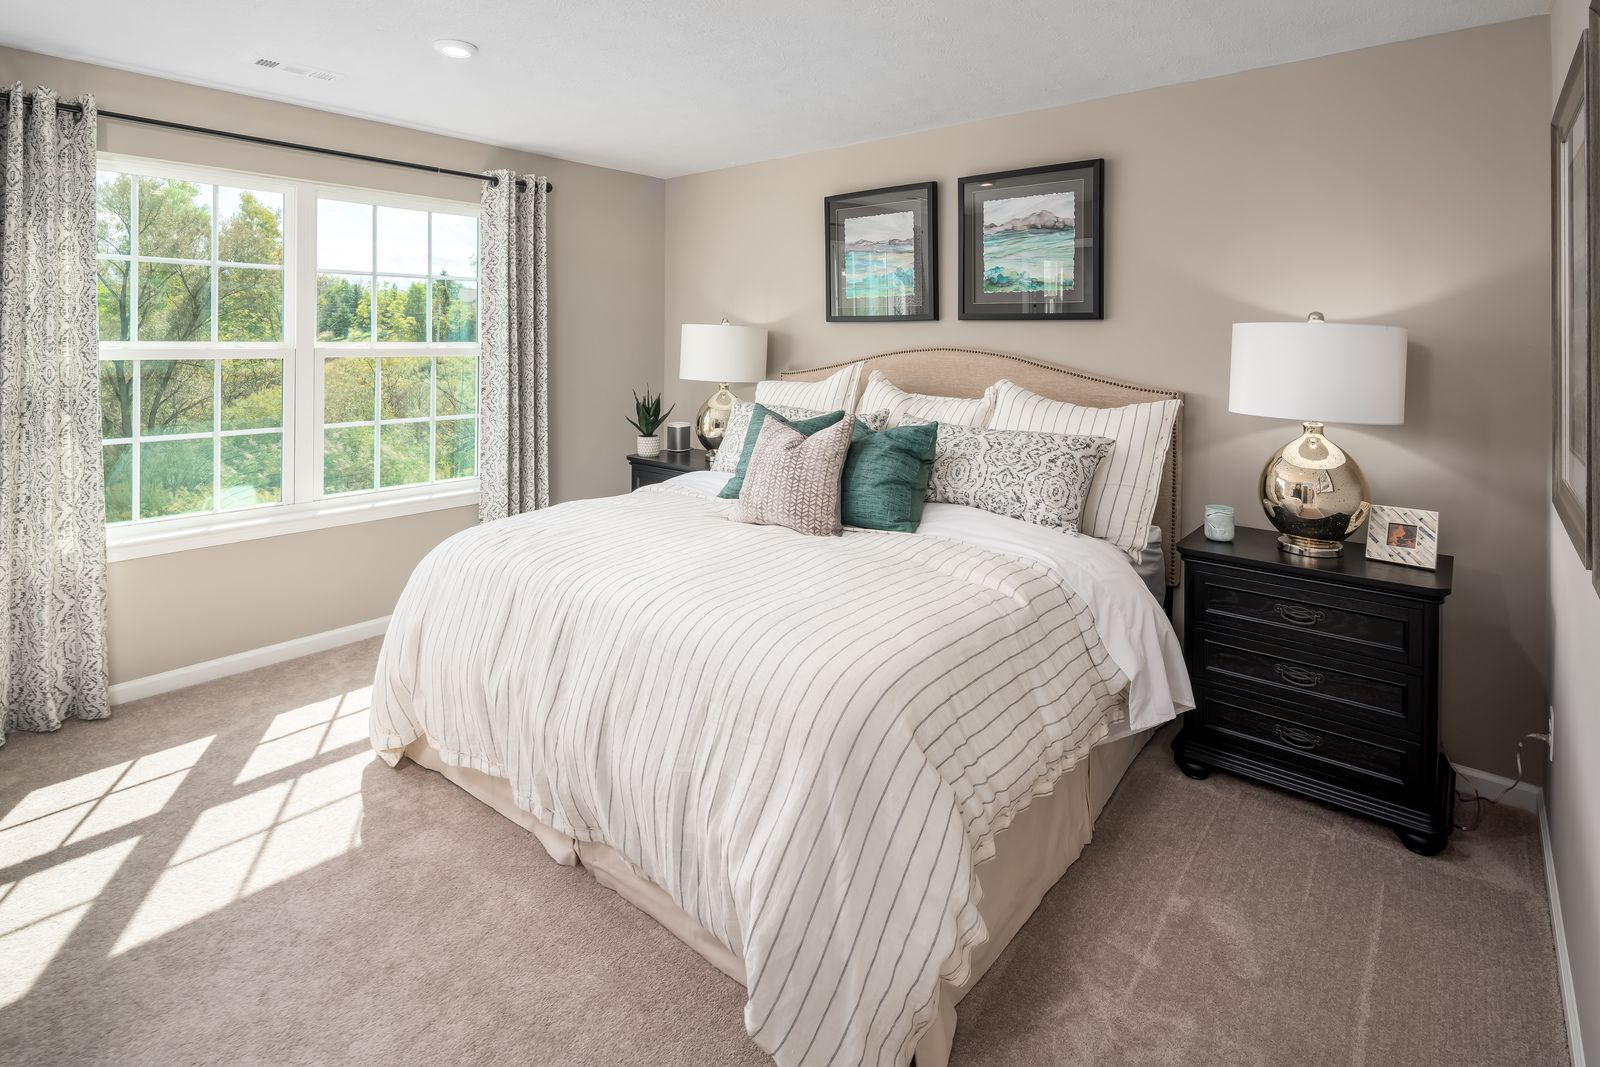 Bedroom featured in the Allegheny By Ryan Homes in Dover, DE